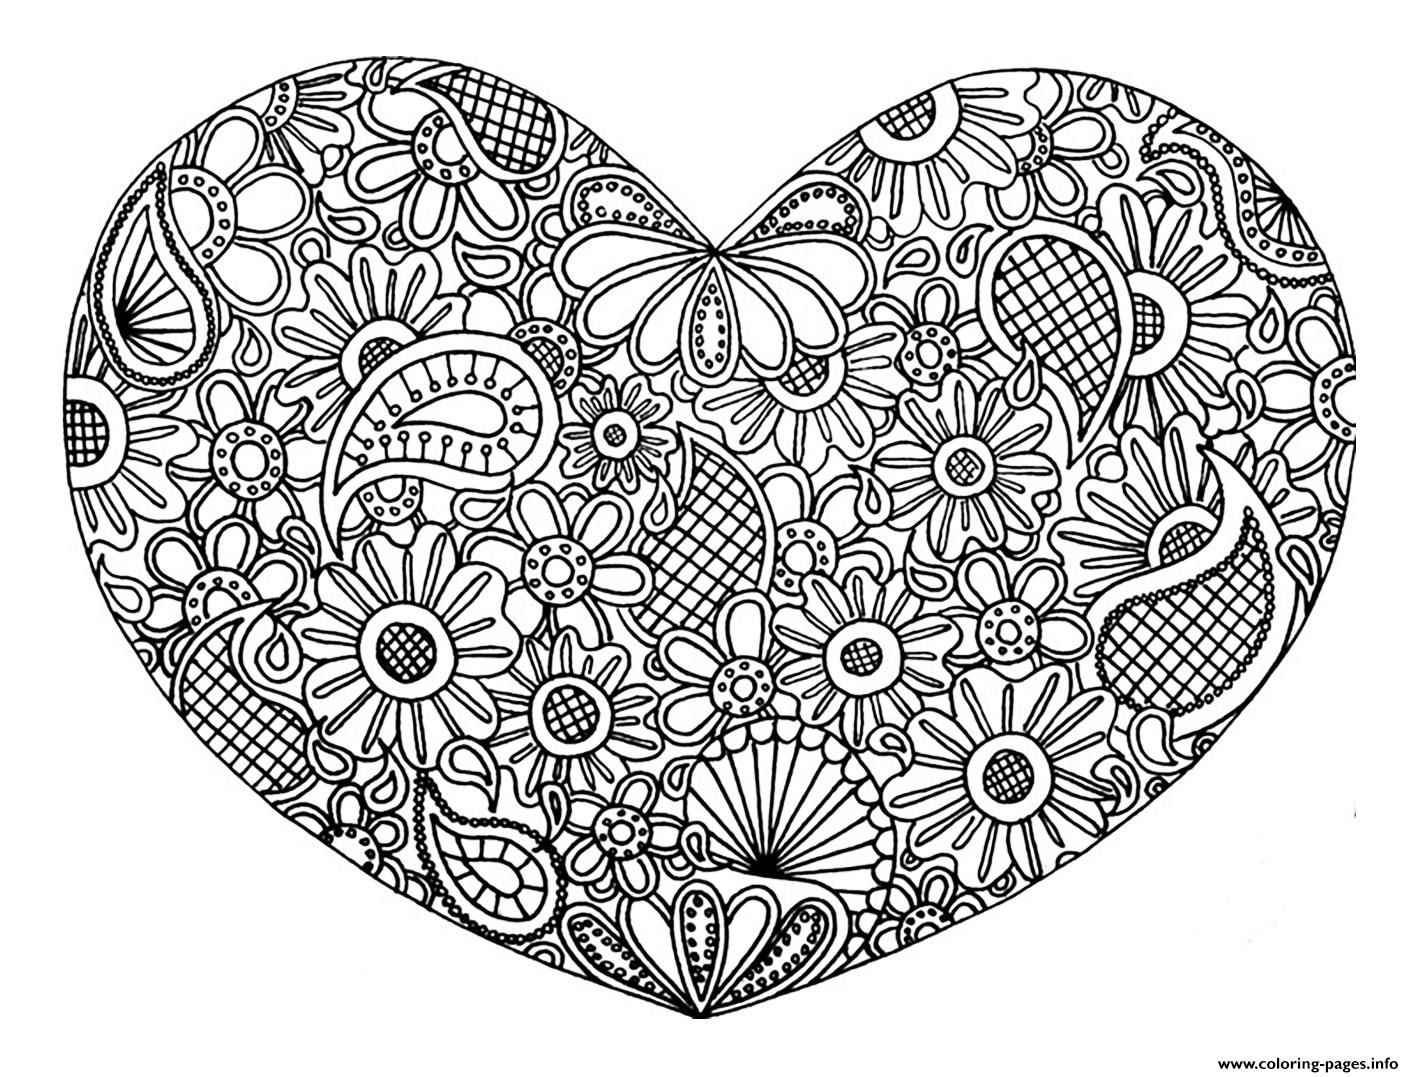 print adult heart mandala fleurs zen 2017 coloring pages